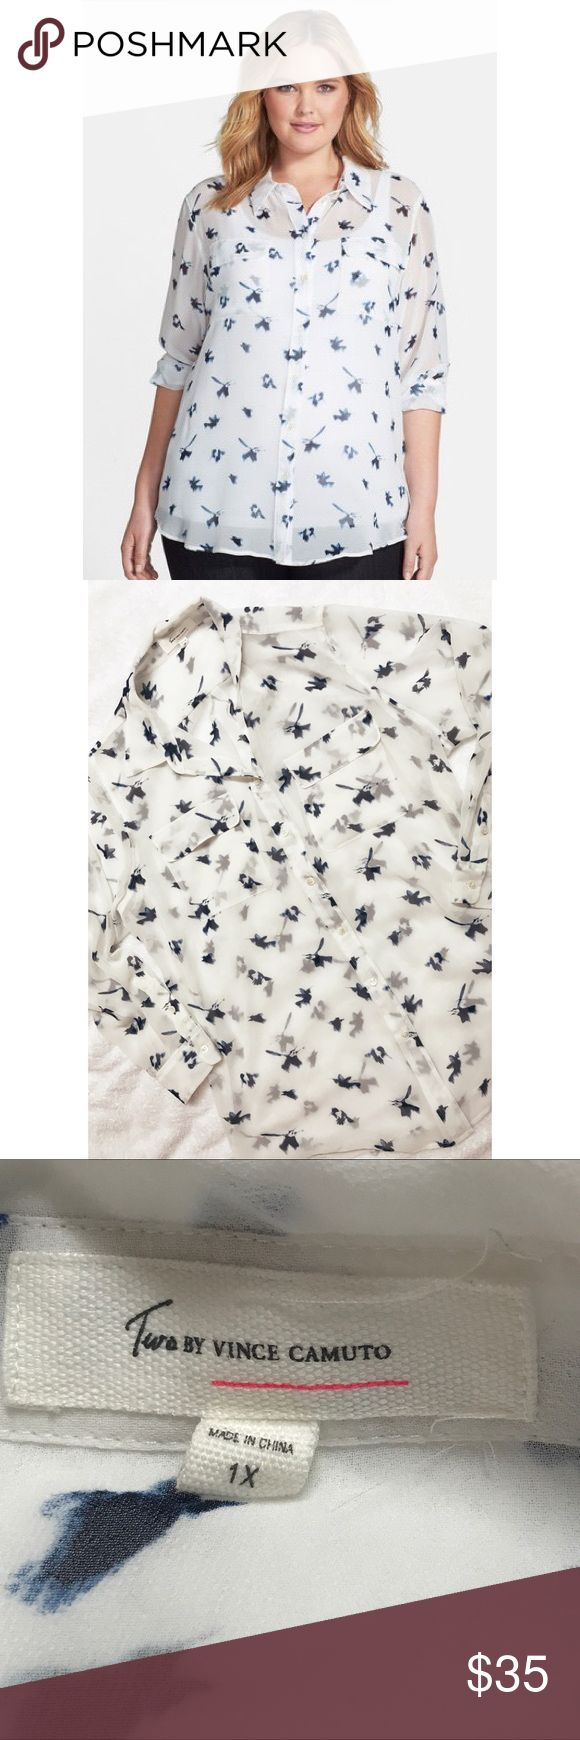 Vince Camuto • Bird Blouse Two by Vince Camuto • Bird Blouse. Sheer white with blue bird details. Size 1X. In perfect condition. First image from Nordstrom website. Two by Vince Camuto Tops Blouses